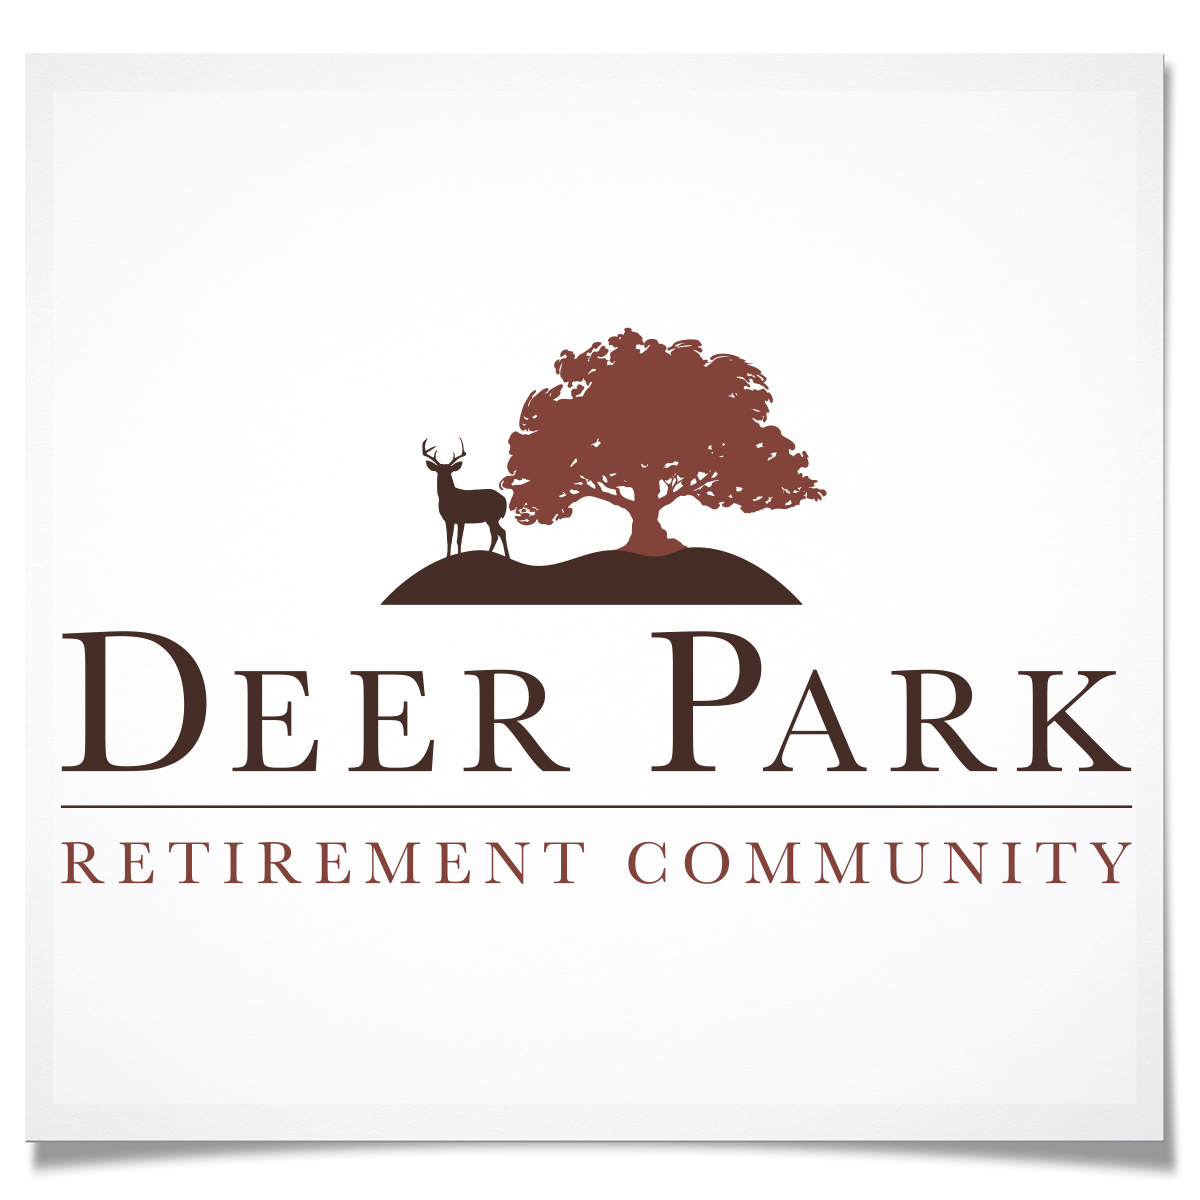 Deer Park Retirement Community Welcomes New Community Development Director